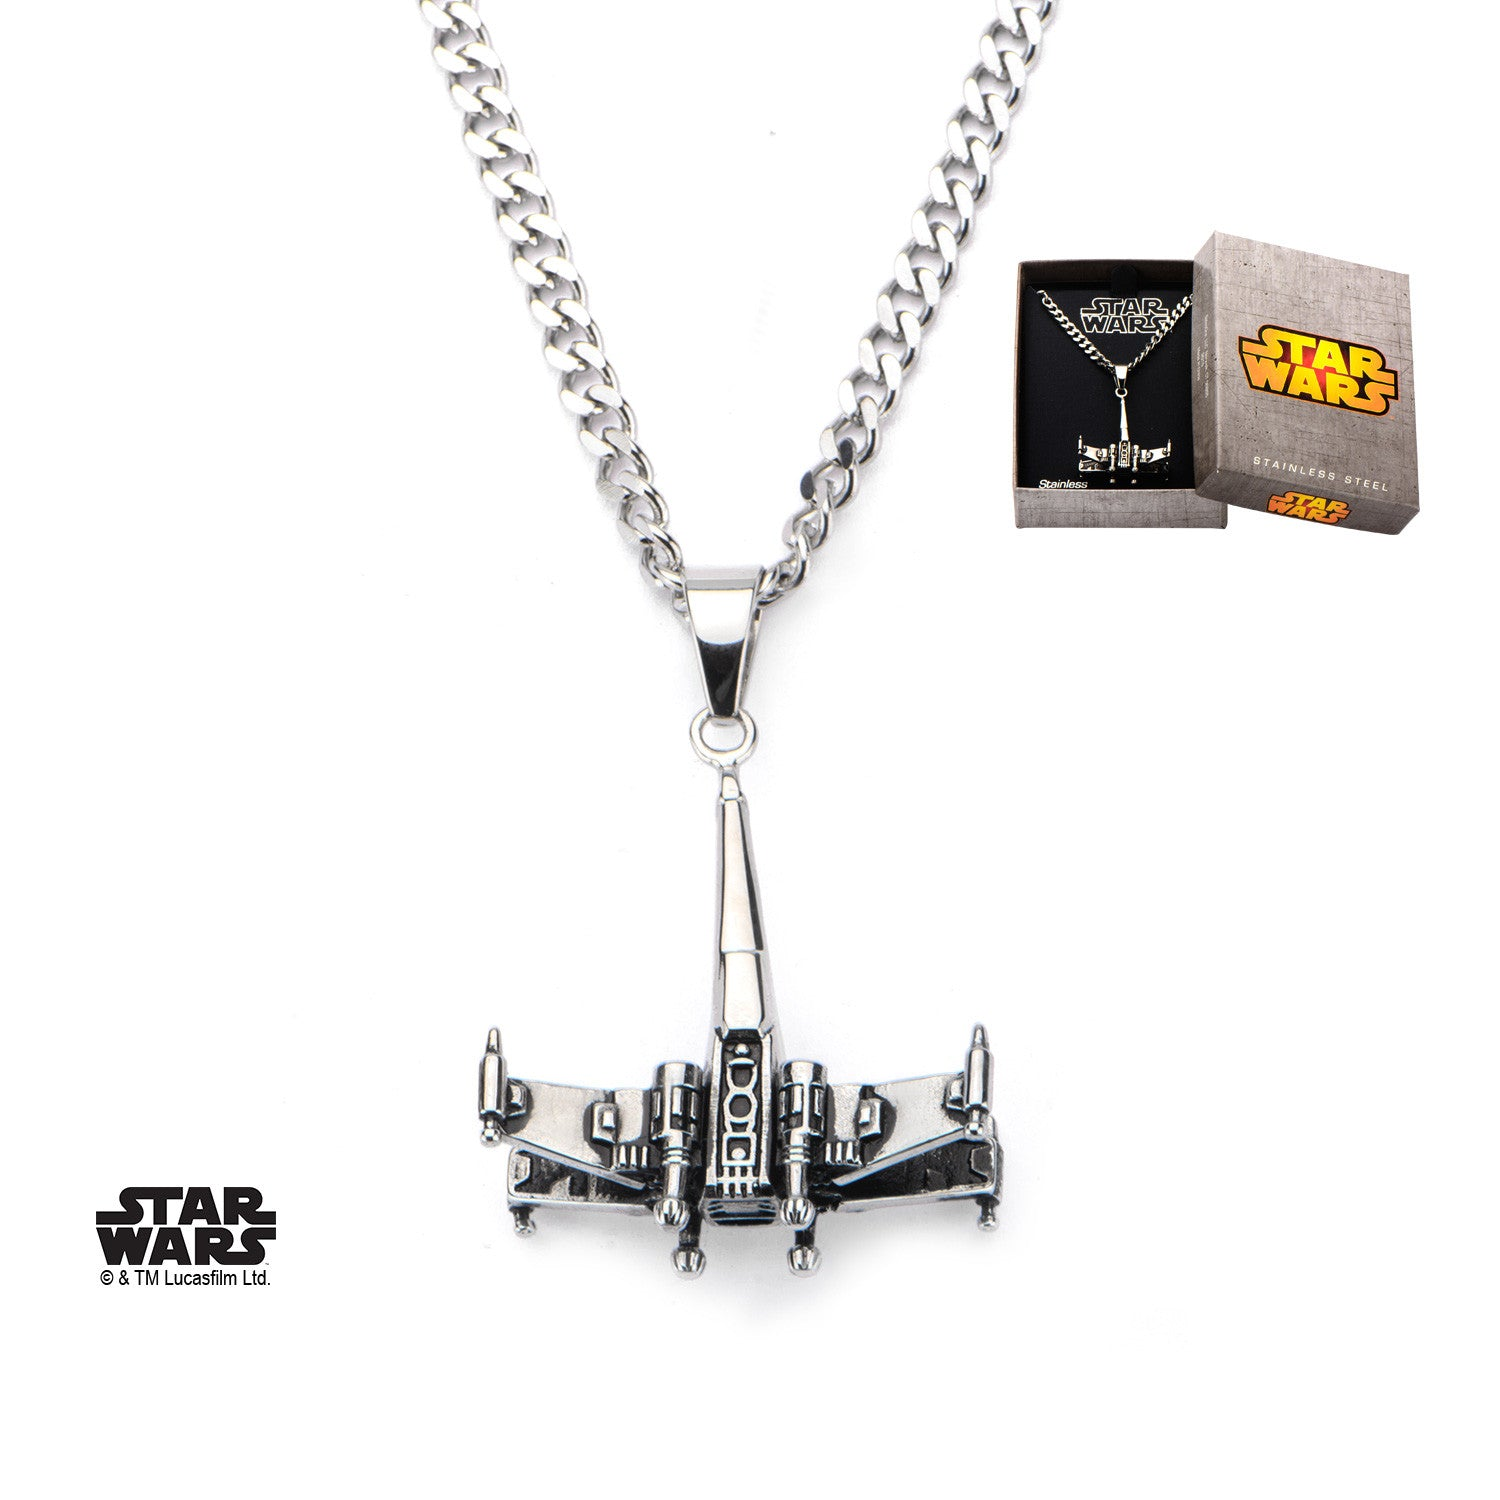 Star wars 3d x wing chain pendant necklace 316 stainless steel star wars 3d x wing chain pendant necklace 316 stainless steel trustmark jewelers mozeypictures Choice Image